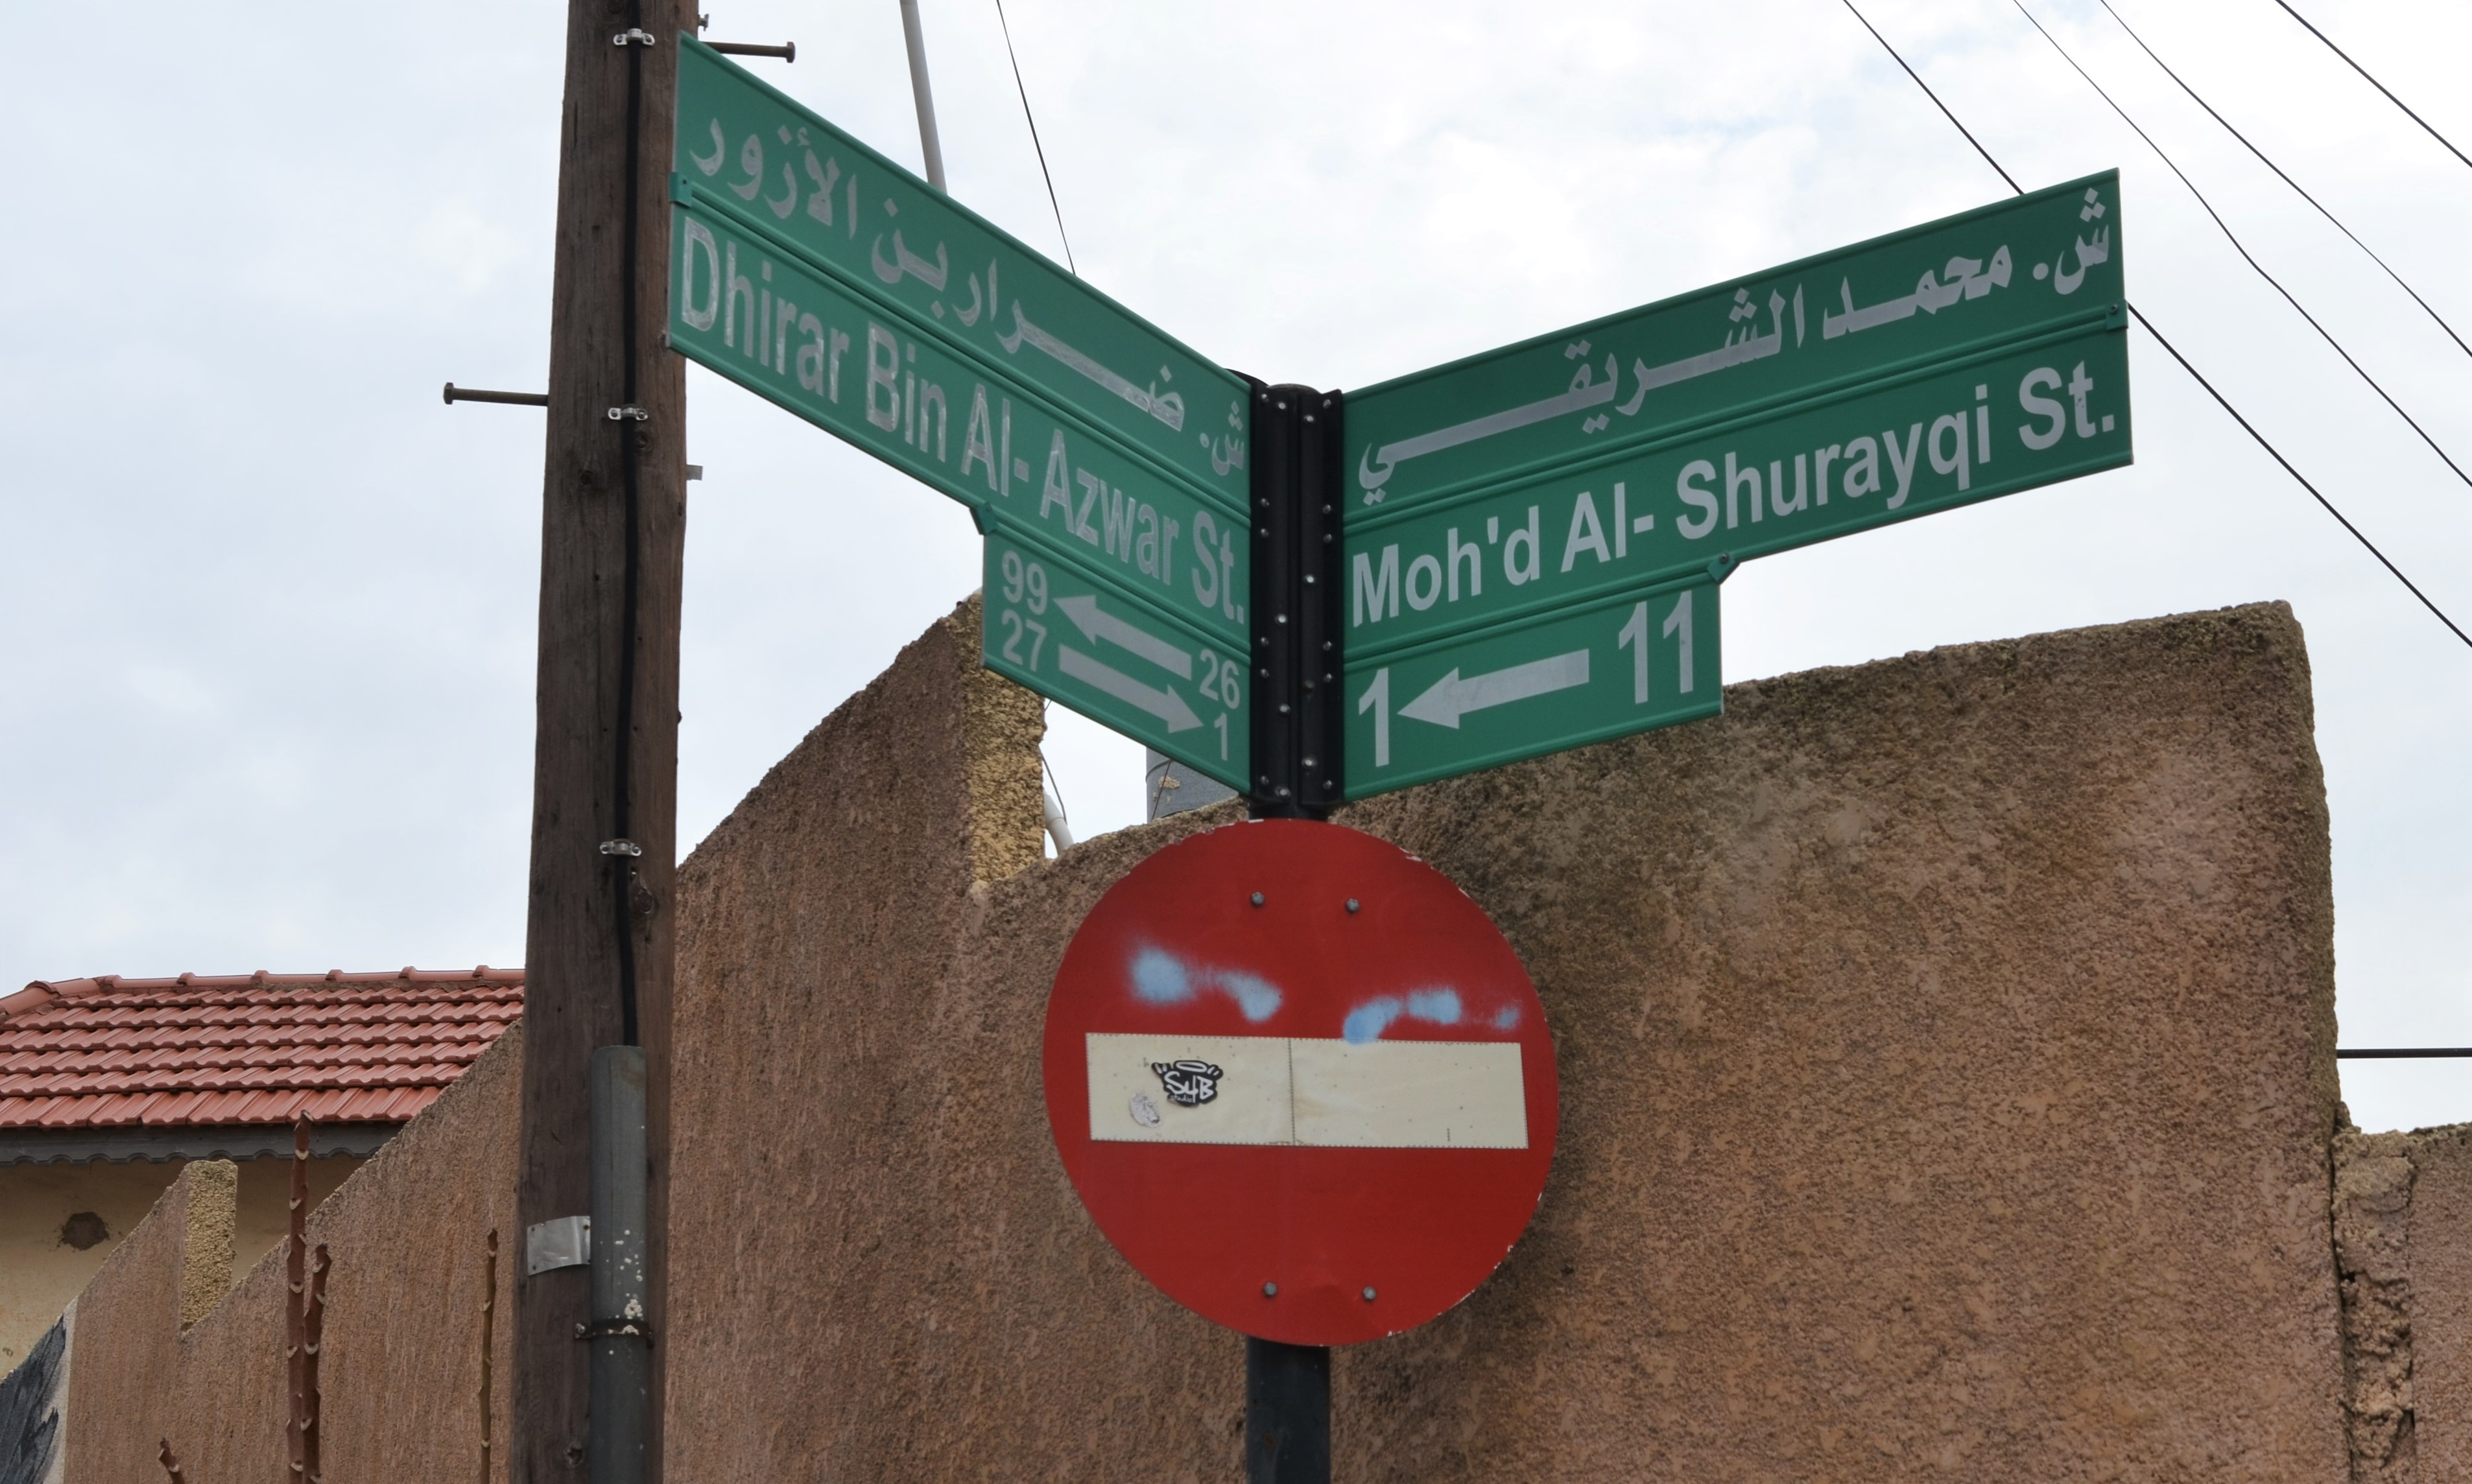 2 green street signs at an intersection in Amman Jordan along with a red and white do not enter sign